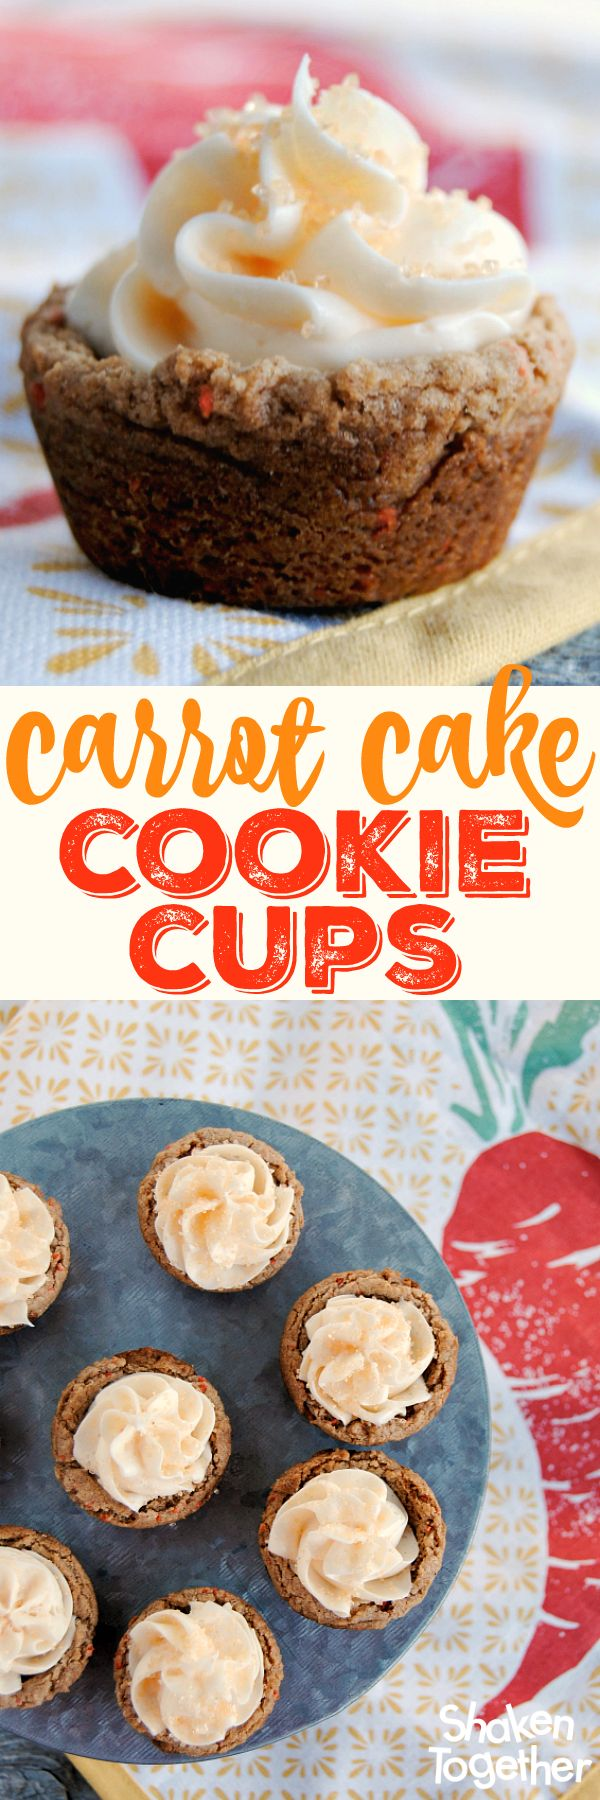 These Carrot Cake Cookie Cups start with a cake mix and end with two cream cheese frosting filled bites of delicious! Easy-to-make and perfect for busy bakers! - From shakentogetherlife.com